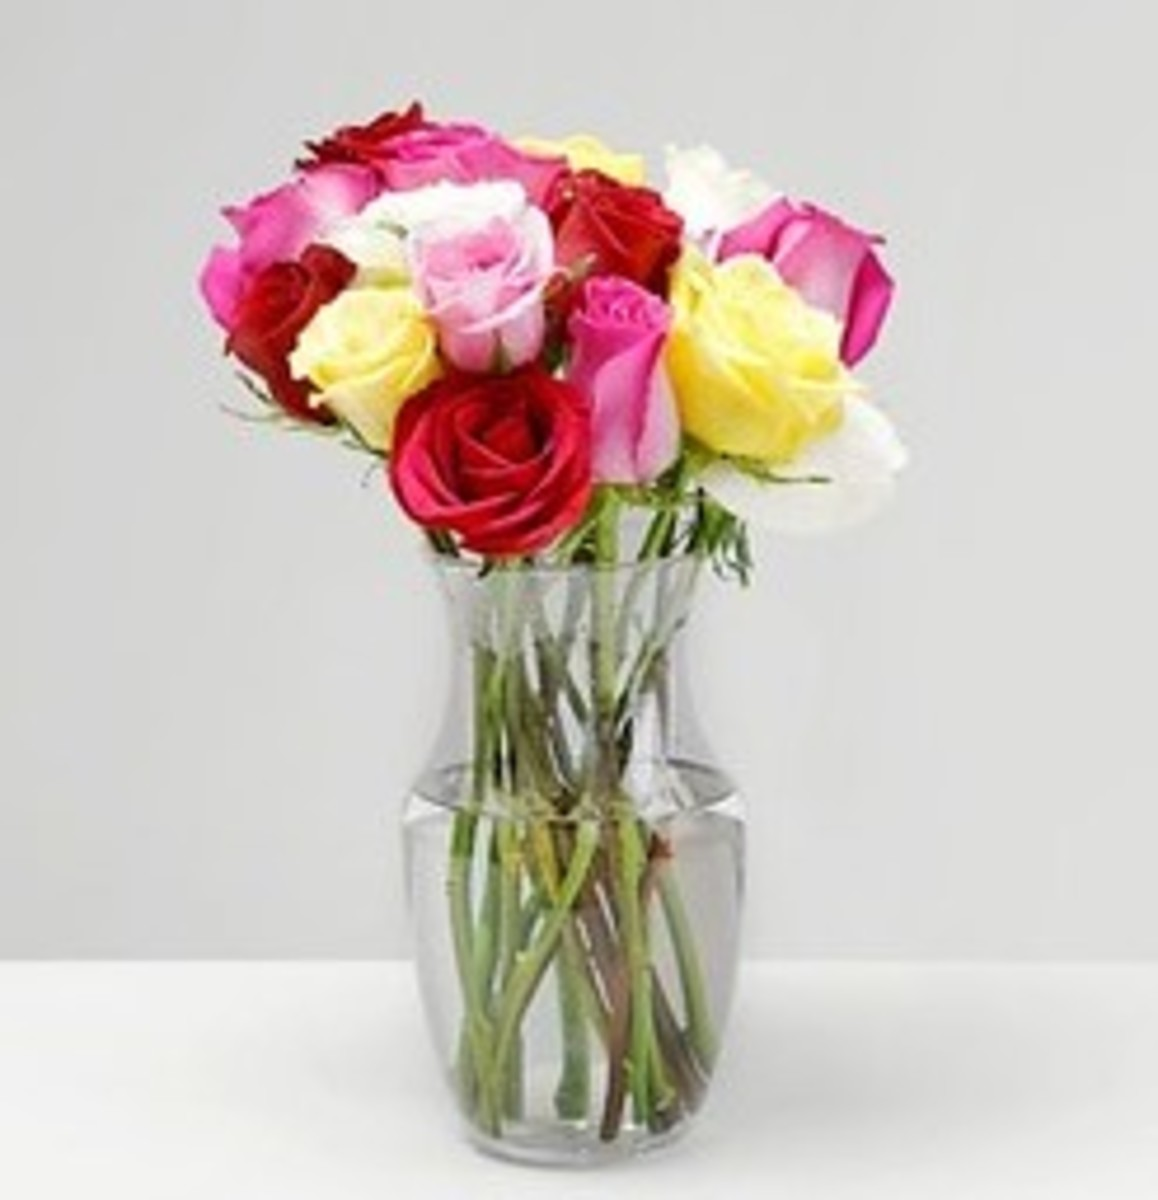 Vase of Roses by www.proflowers.com